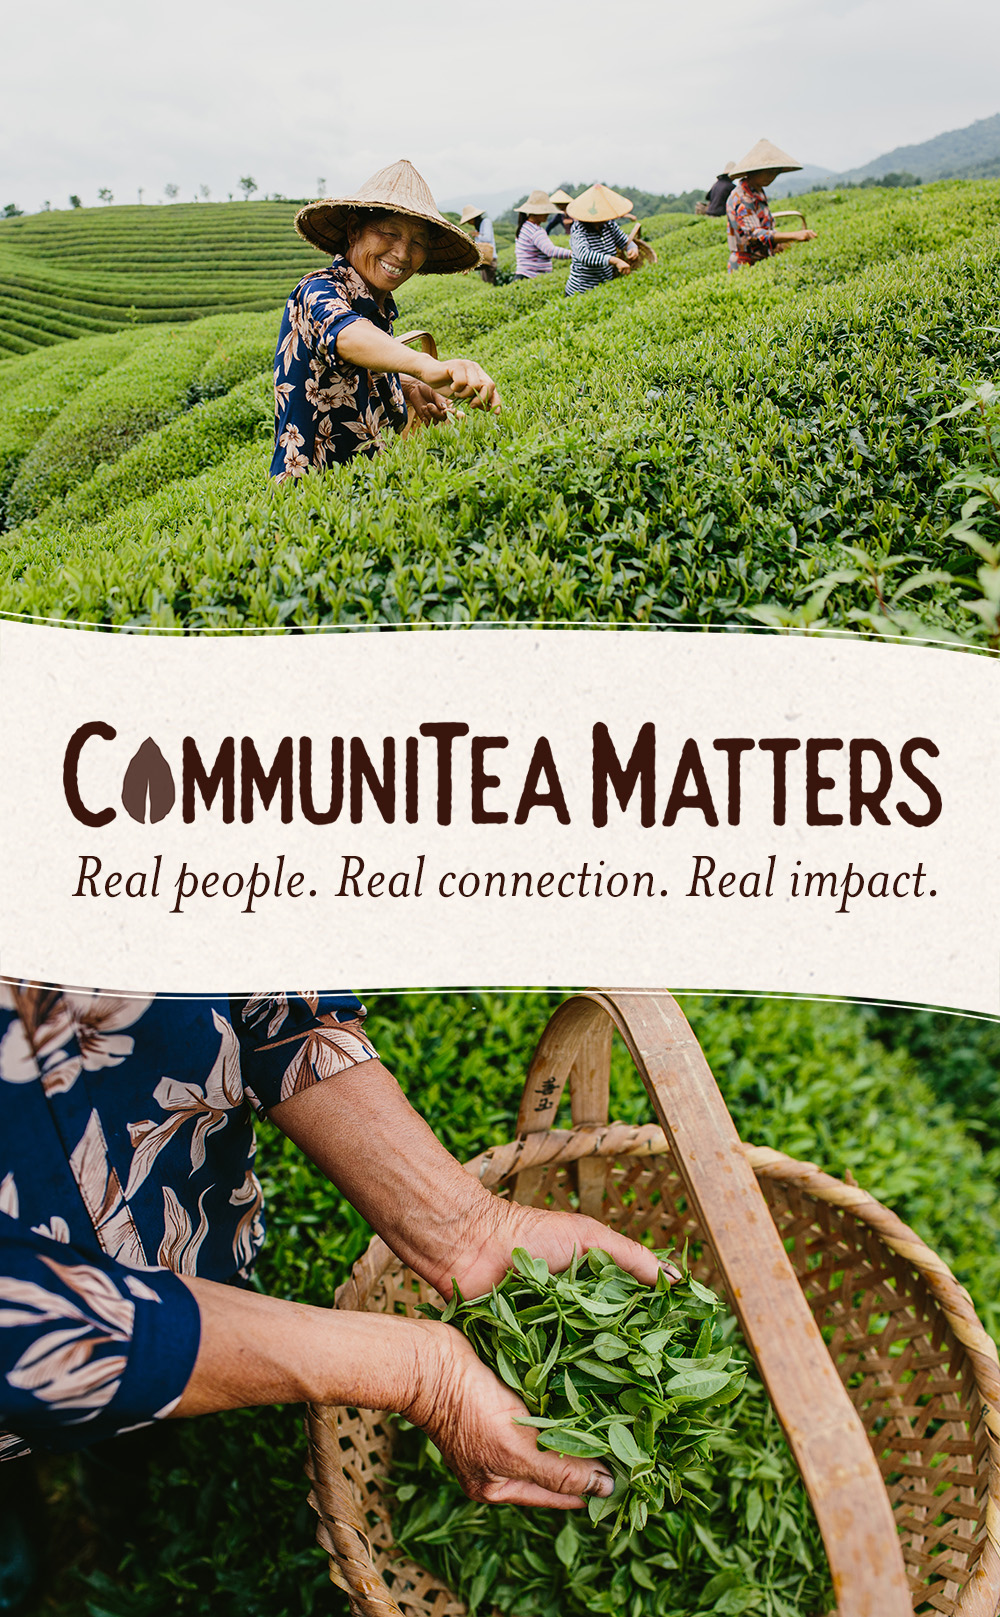 #CommuniTea Matters. At Numi Organic Tea, we believe that socially responsible, ethically conducted business fosters healthy, thriving global communities from farm to cup.